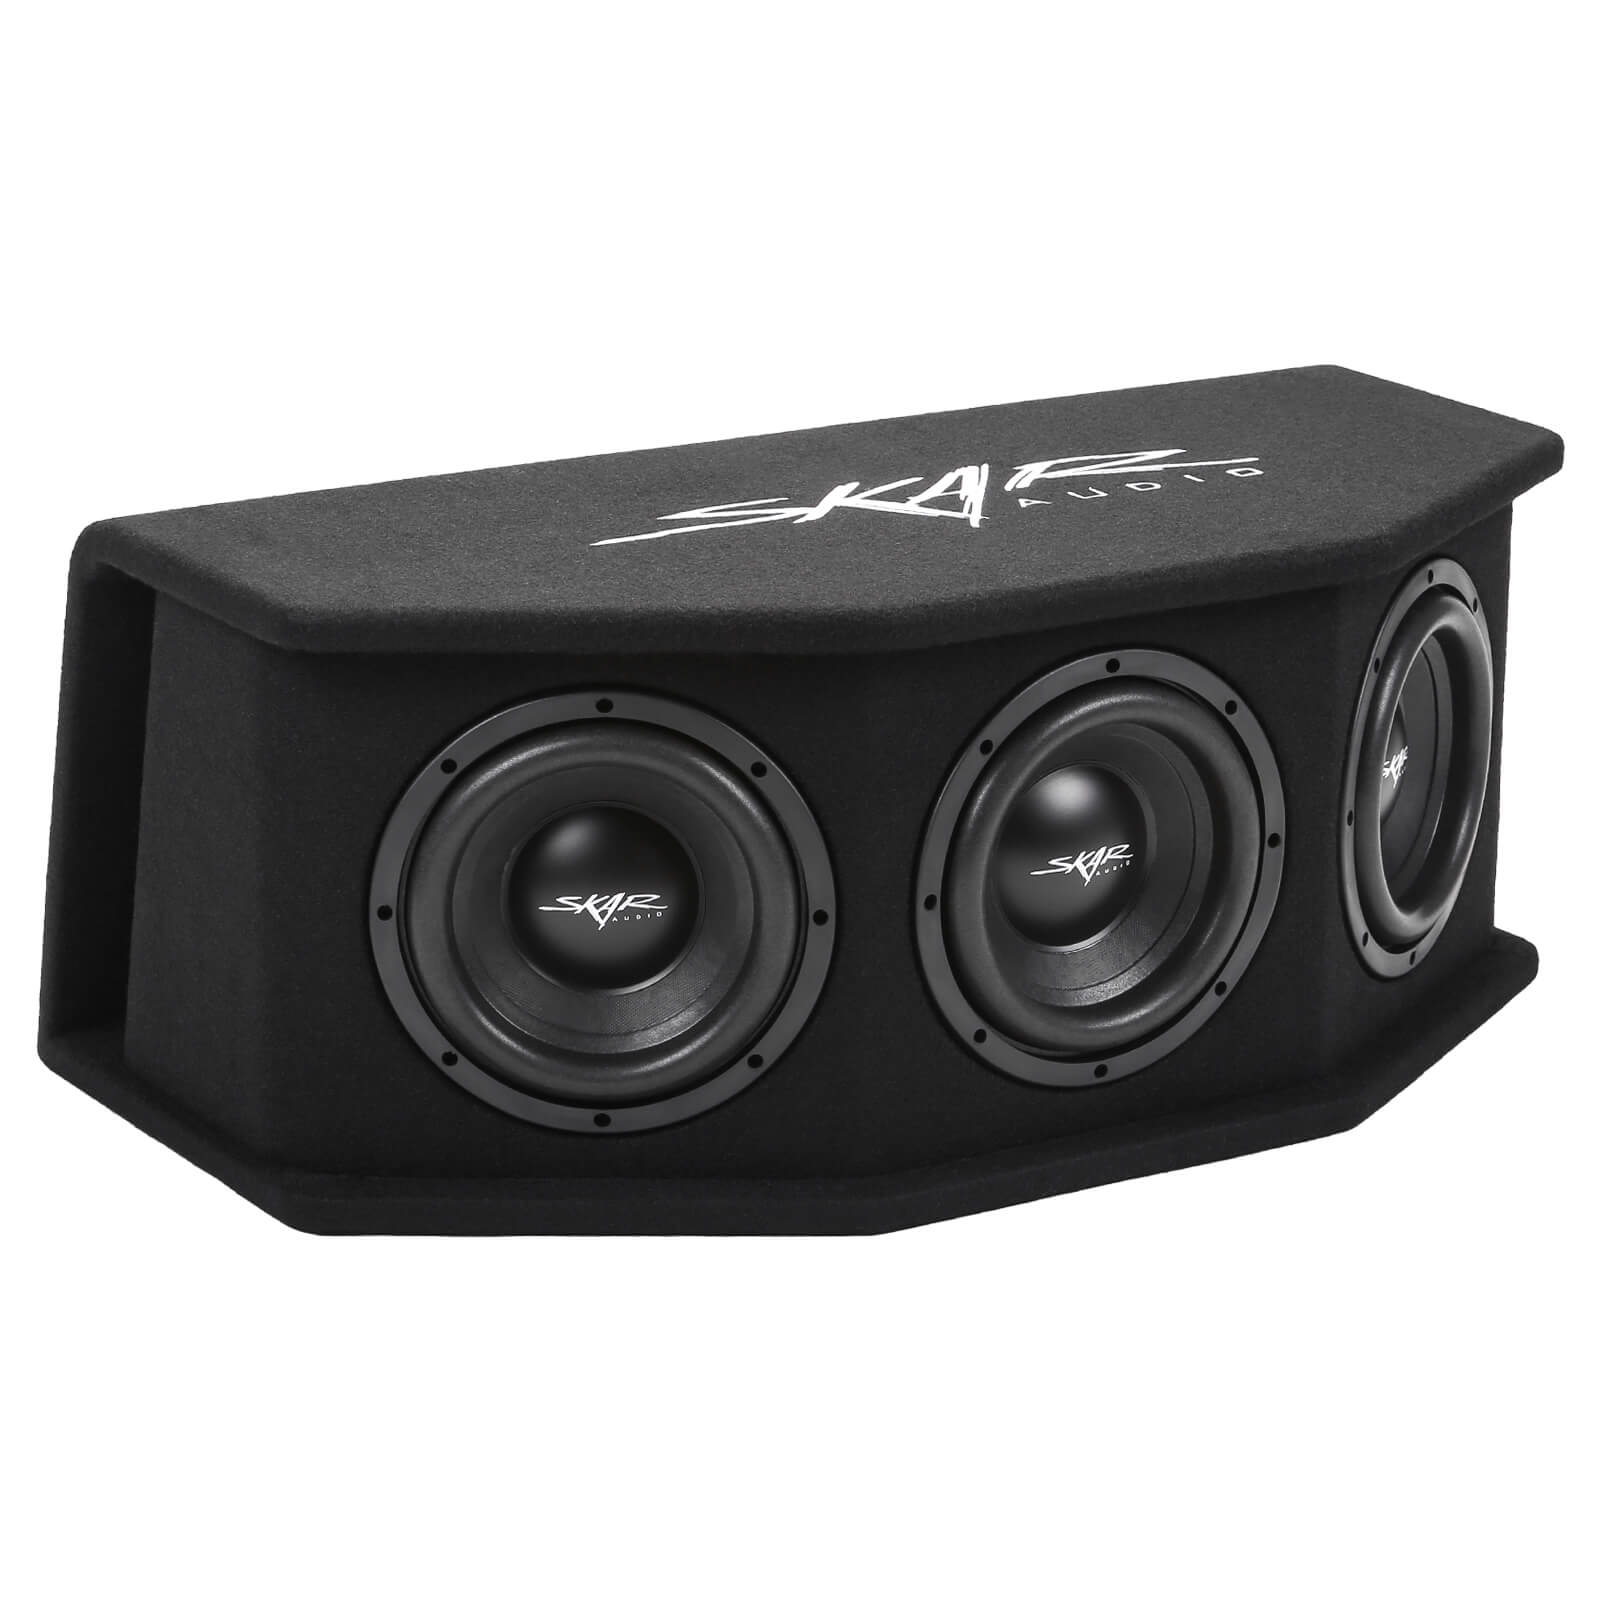 "Skar Audio SDR-3X8D2 - Triple 8"" 2,100 Watt Loaded SDR Series Vented Subwoofer Enclosure Main Image"